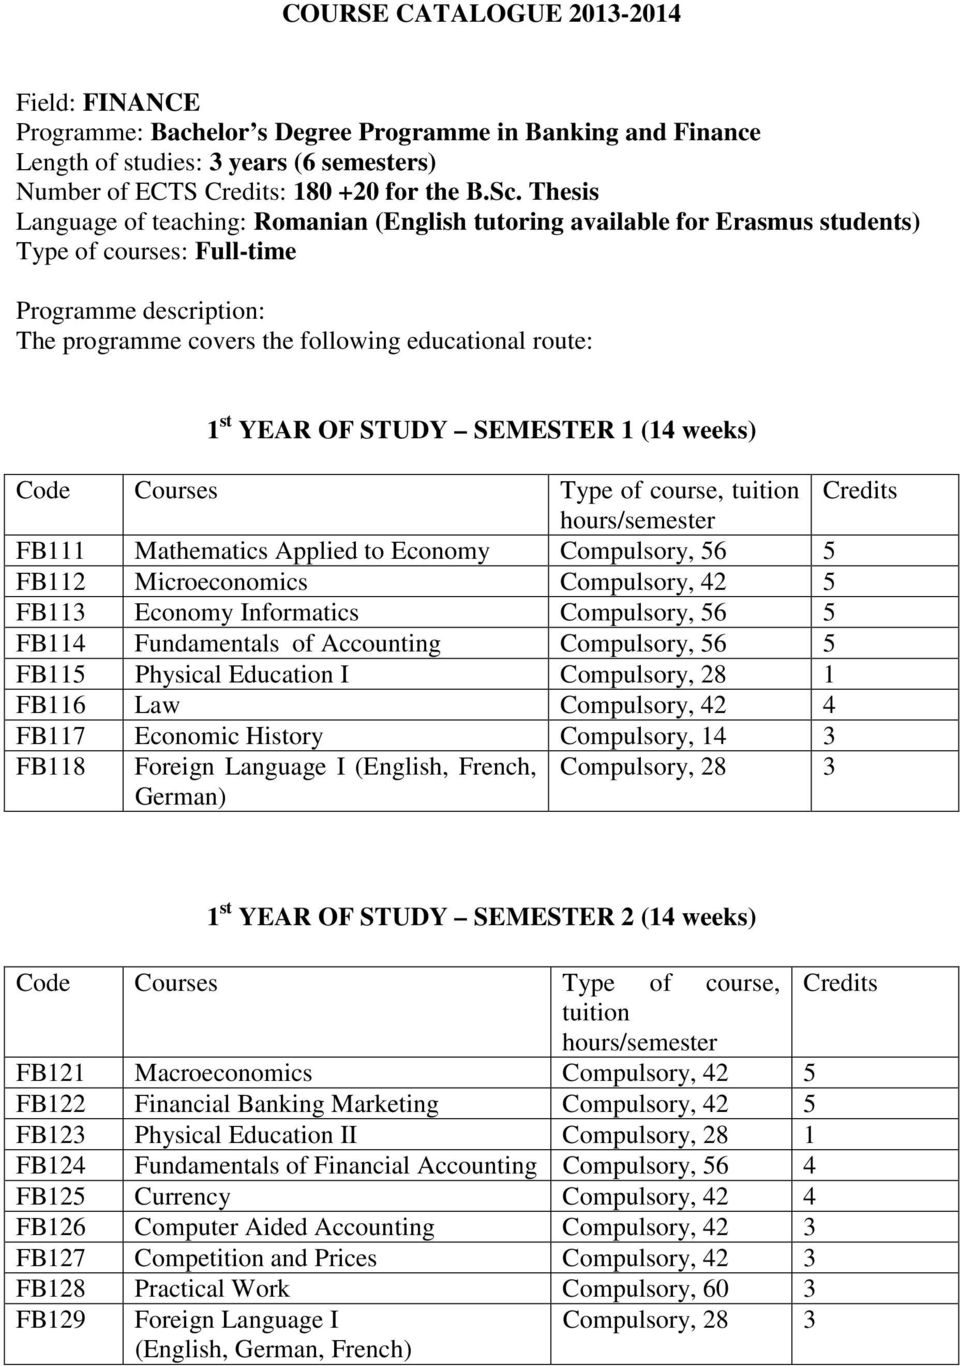 YEAR OF STUDY SEMESTER 1 (14 weeks) Code Courses Type of course, Credits FB111 Mathematics Applied to Economy Compulsory, 56 5 FB112 Microeconomics Compulsory, 42 5 FB113 Economy Informatics